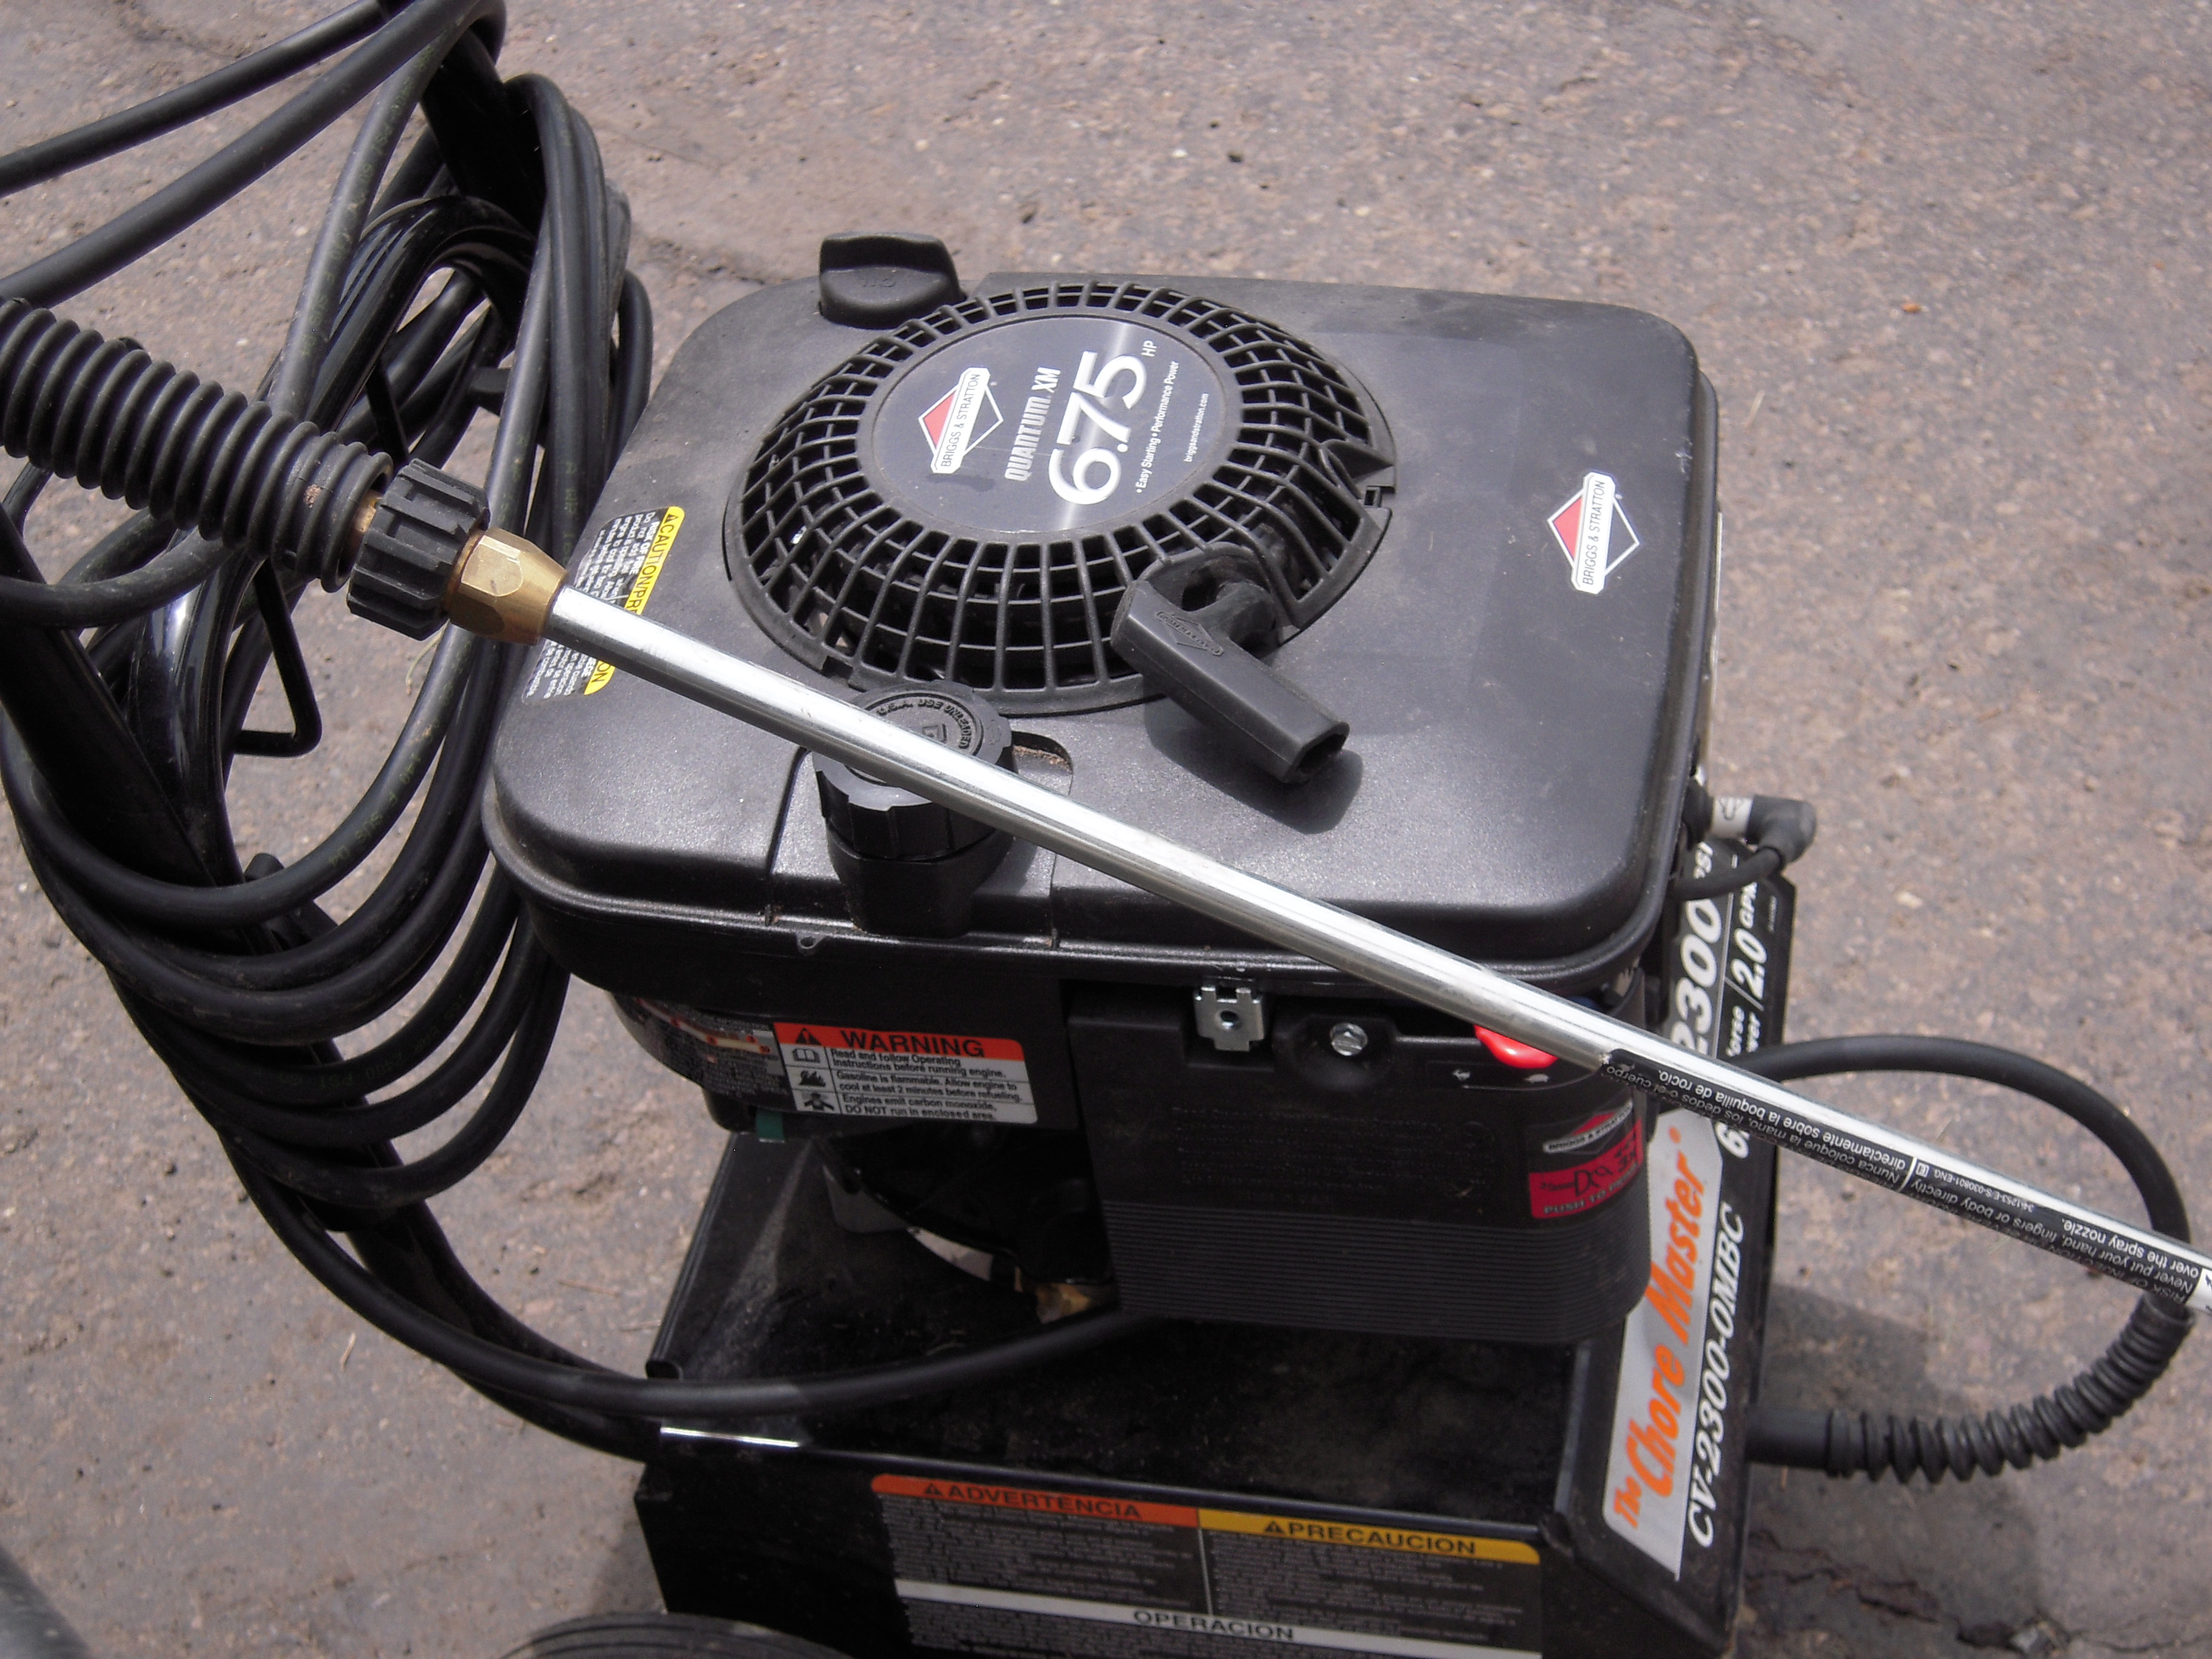 I have a Chore MAster CV-2300-OMBC with a Briggs & Stratton